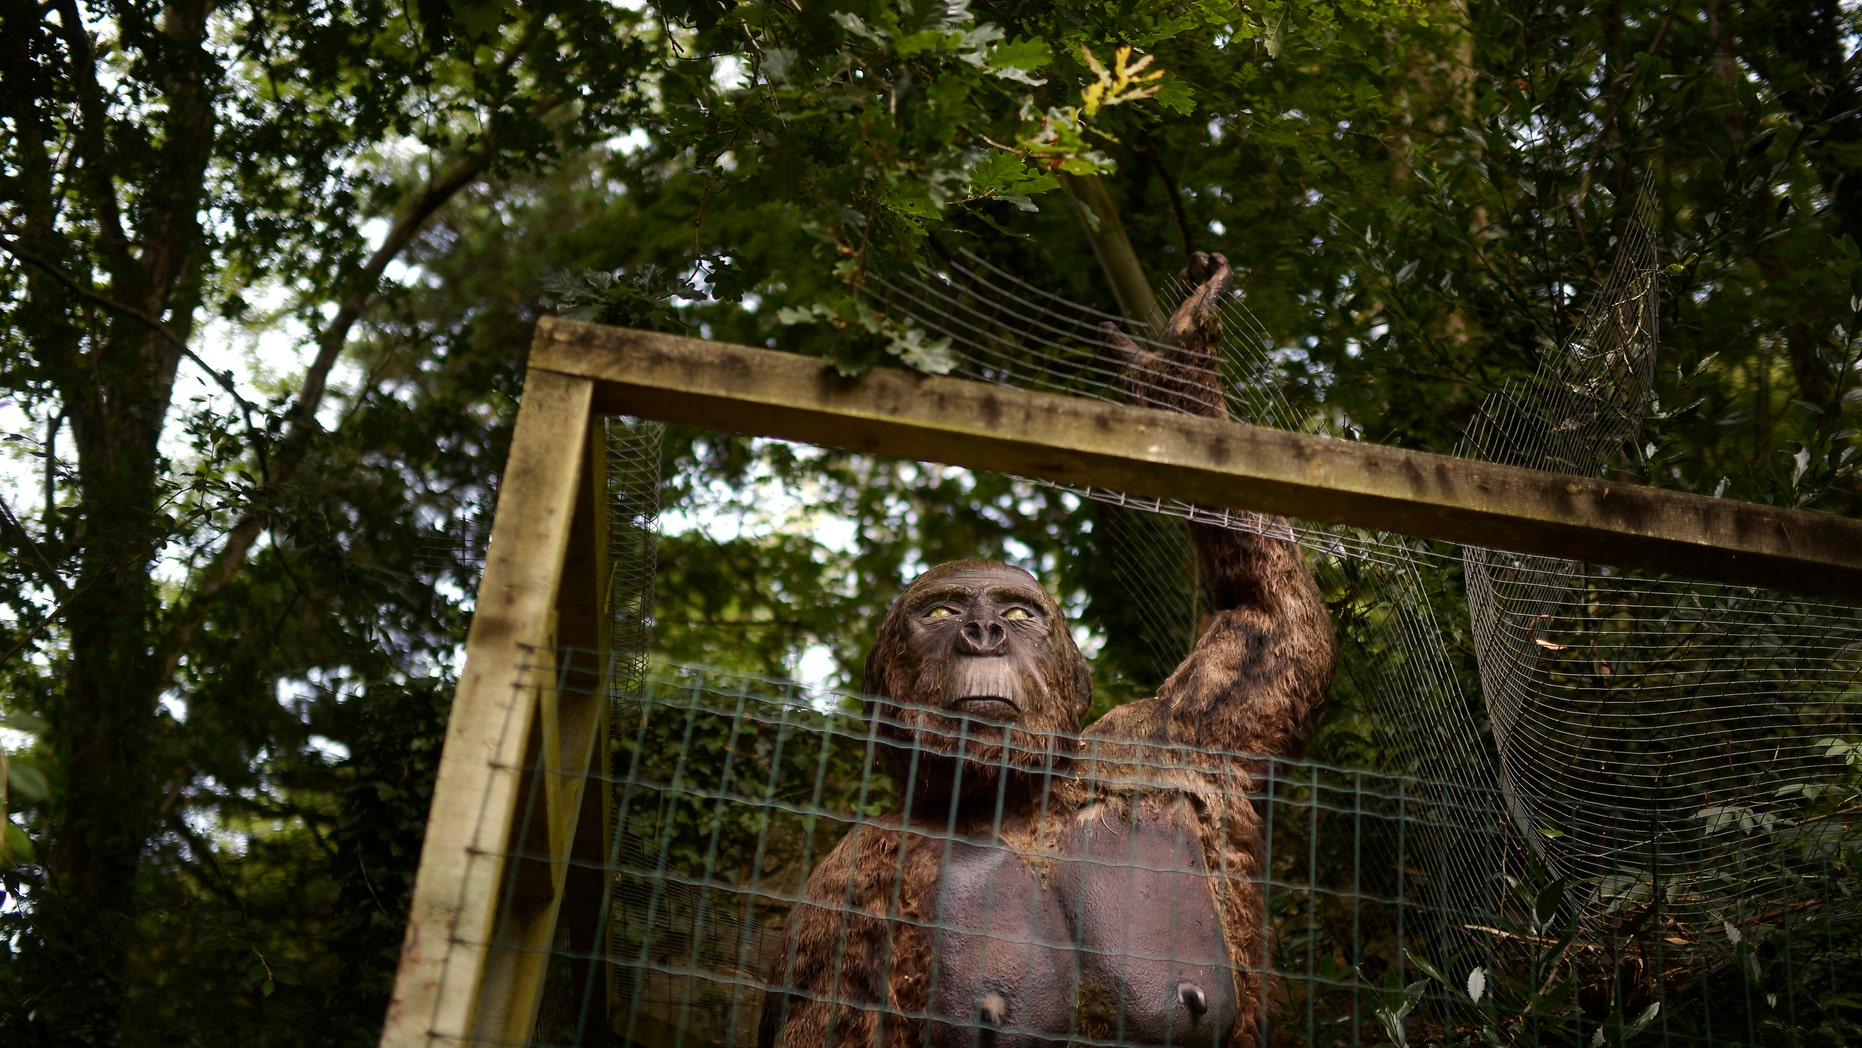 A life-size model of a Gigantopithecus tearing its cage is seen at the Karpin Abentura park in the Karrantza valley, outside Bilbao July 26, 2014. (REUTERS/Vincent West)